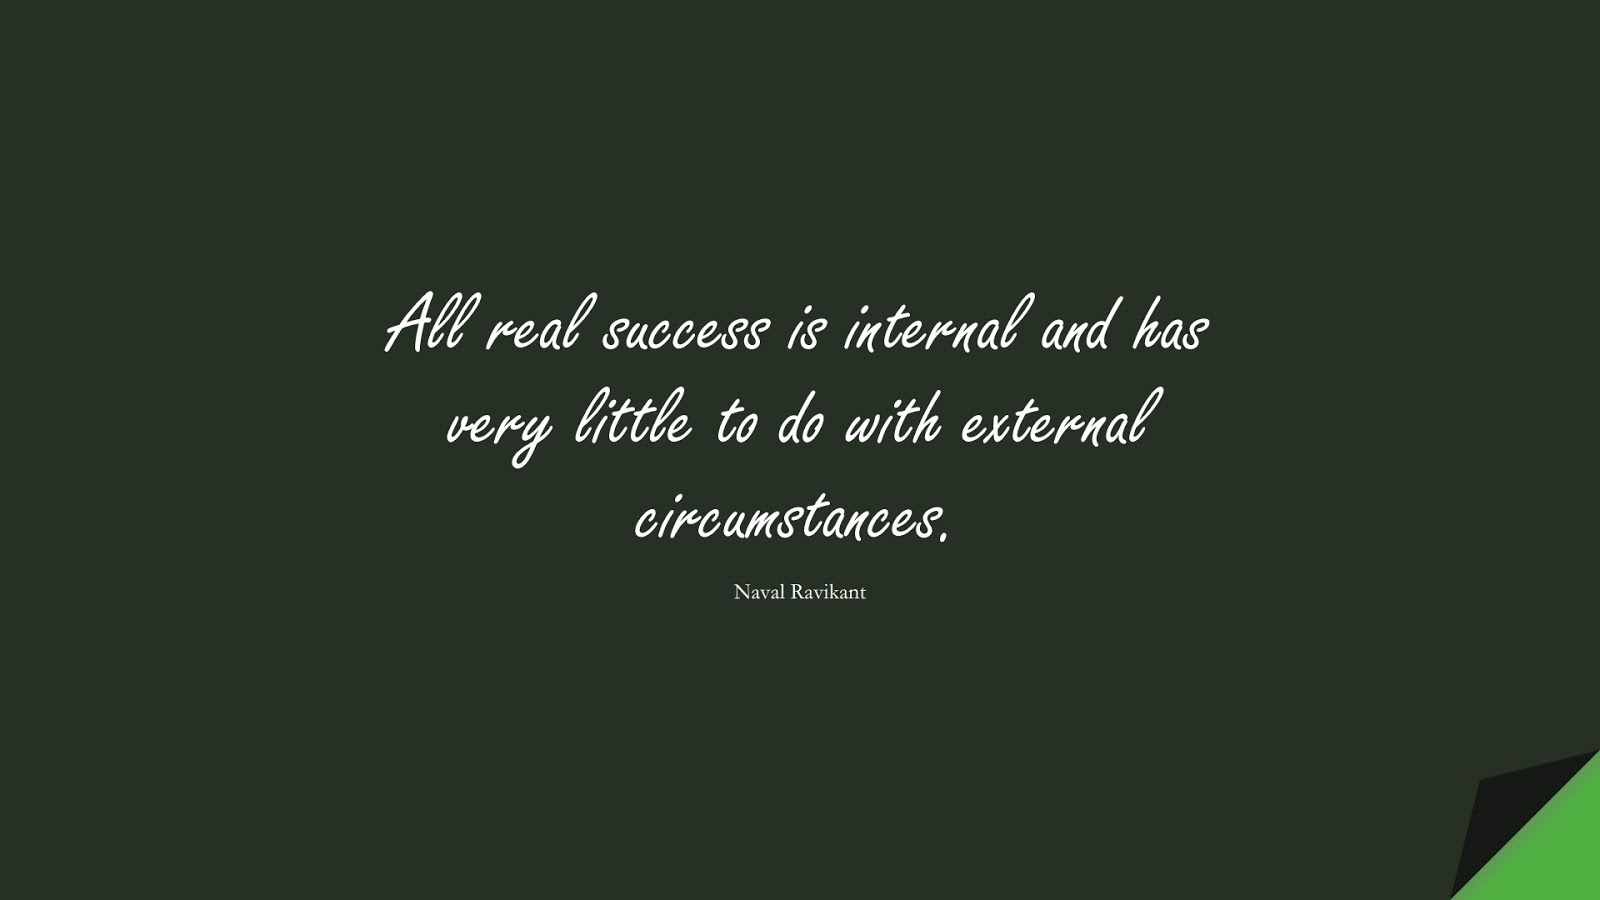 All real success is internal and has very little to do with external circumstances. (Naval Ravikant);  #CharacterQuotes